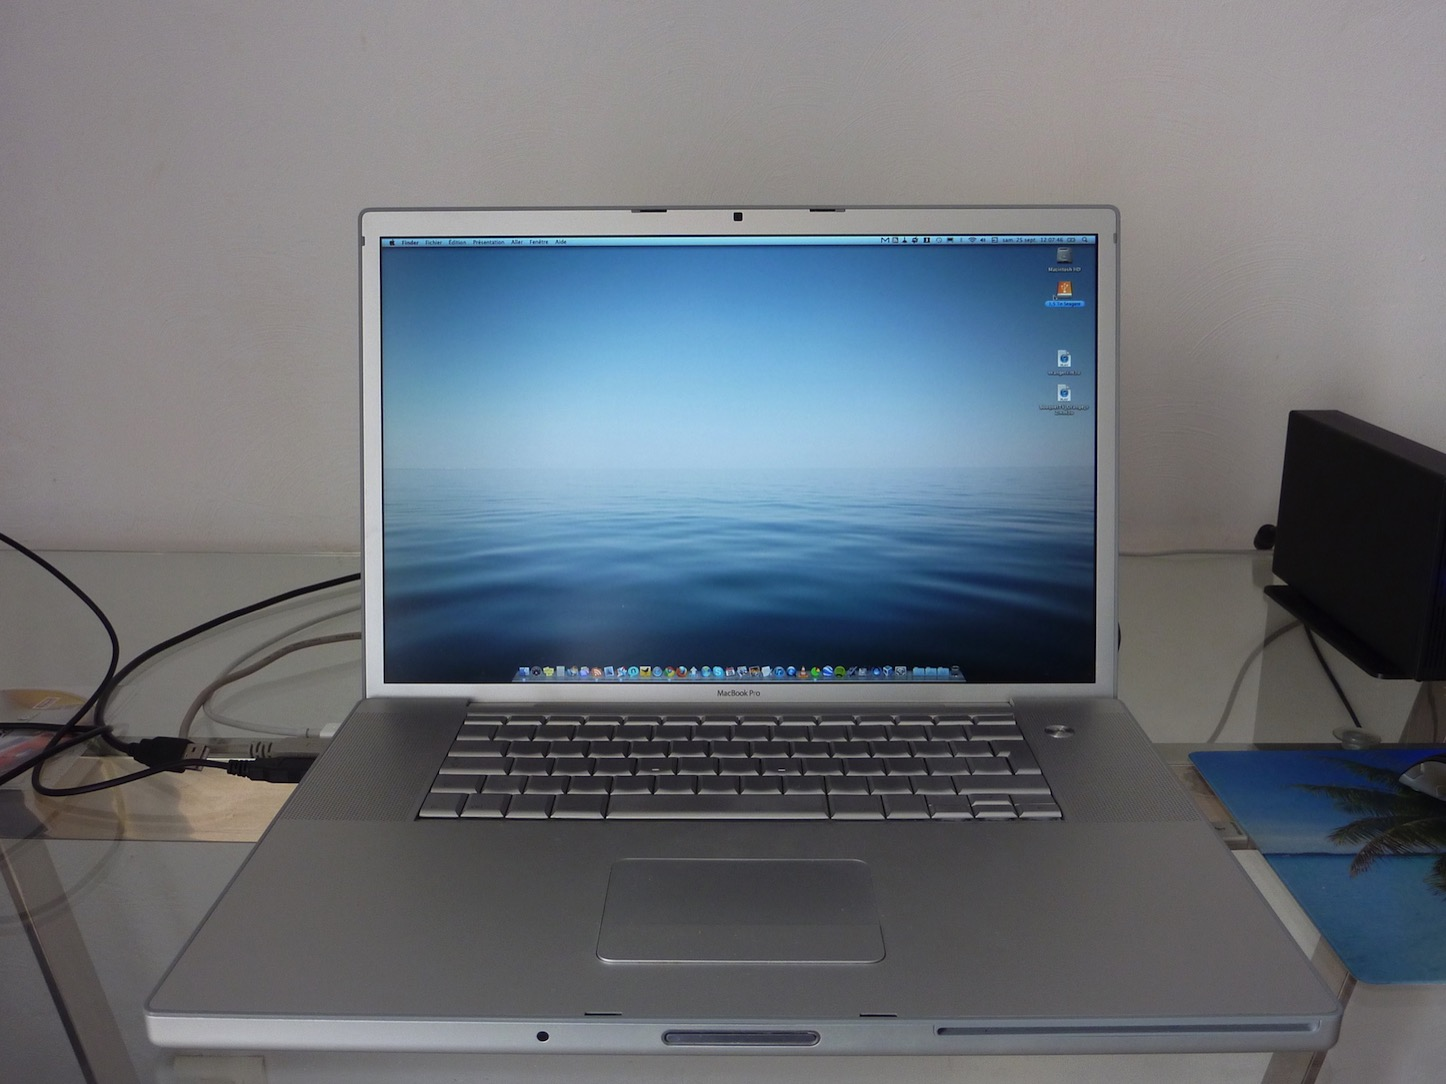 macbook-pro-17-end-of-support.jpg